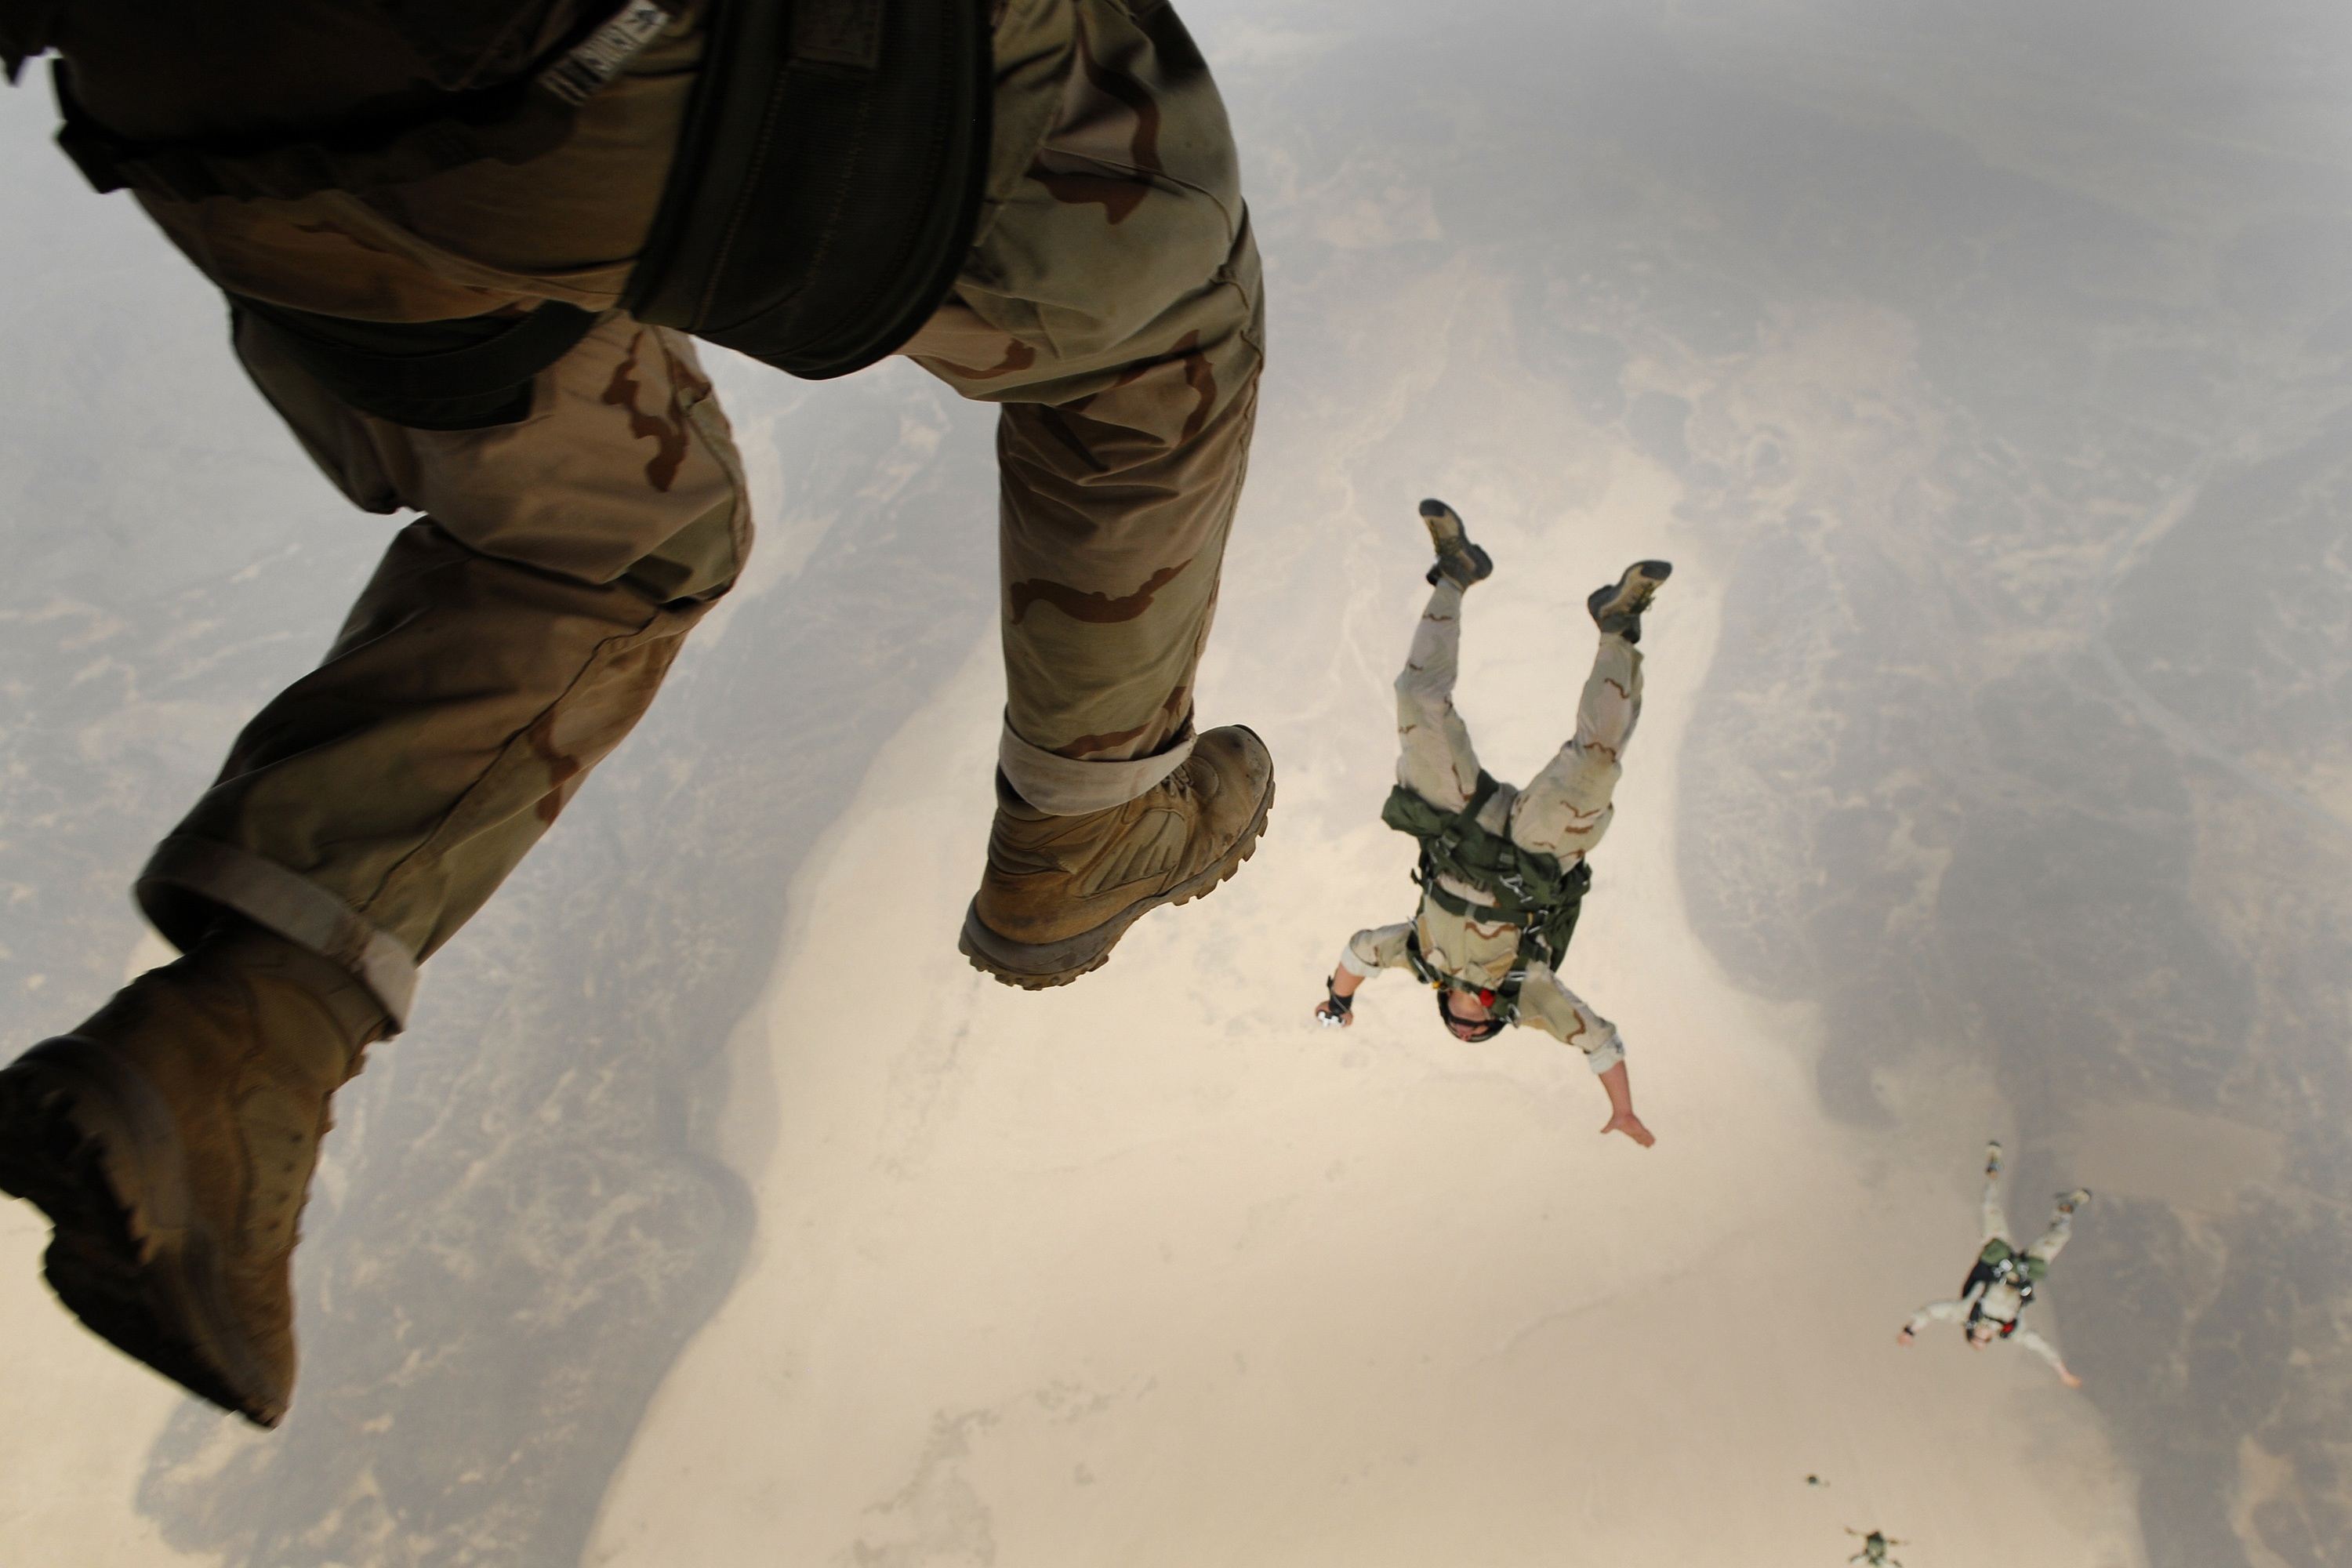 https://static.pexels.com/photos/38523/skydiving-jump-falling-parachuting-38523.jpeg